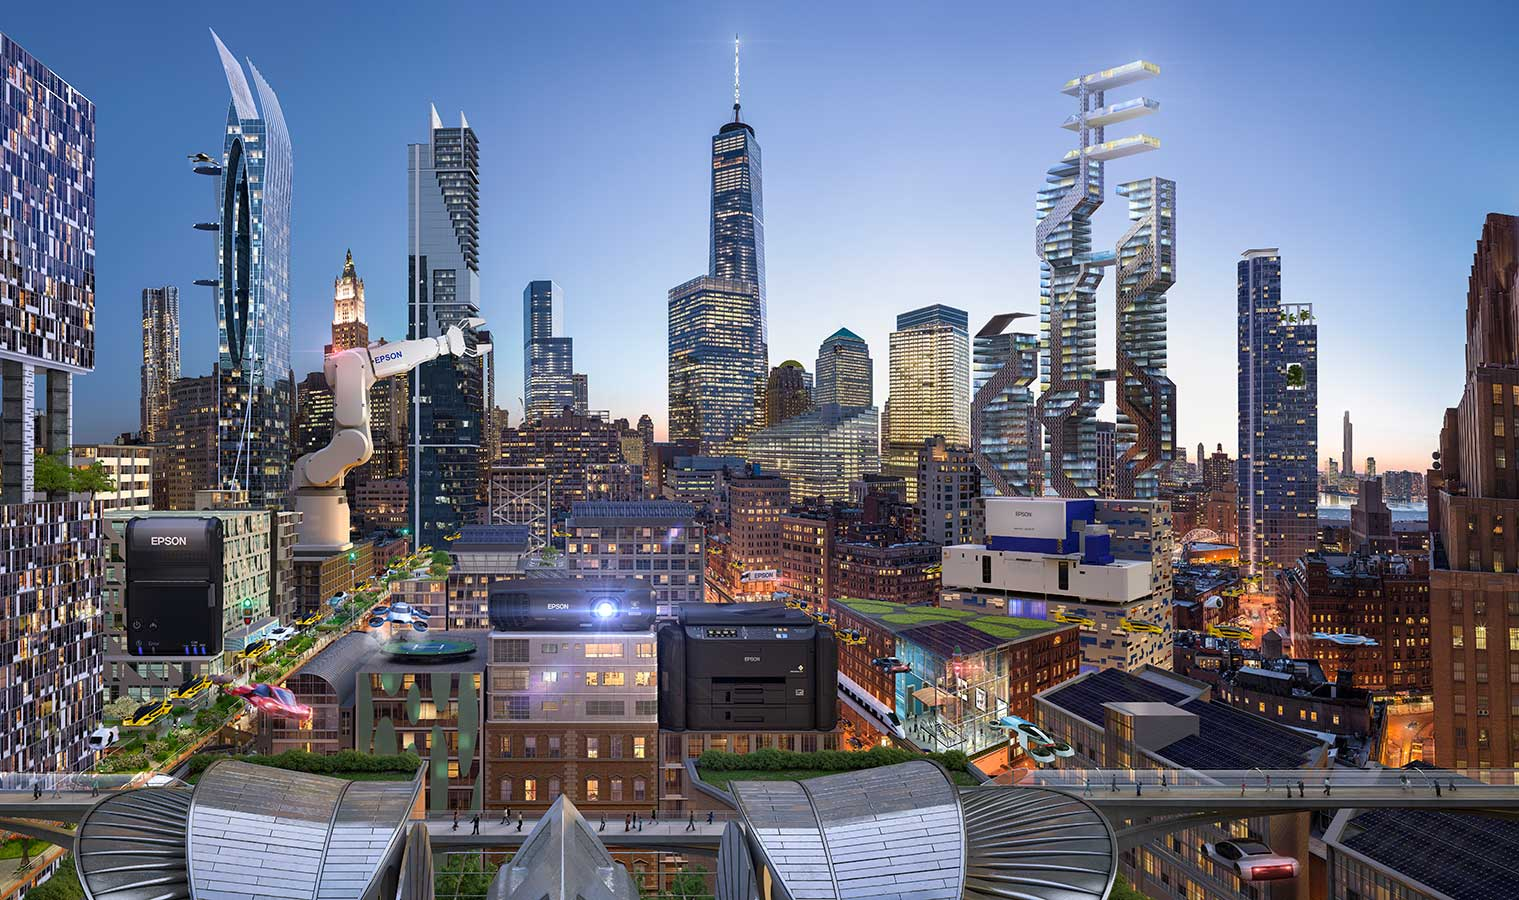 Art Design Wallpaper Hd Working With Glen Wexler To Produce Future Cities For